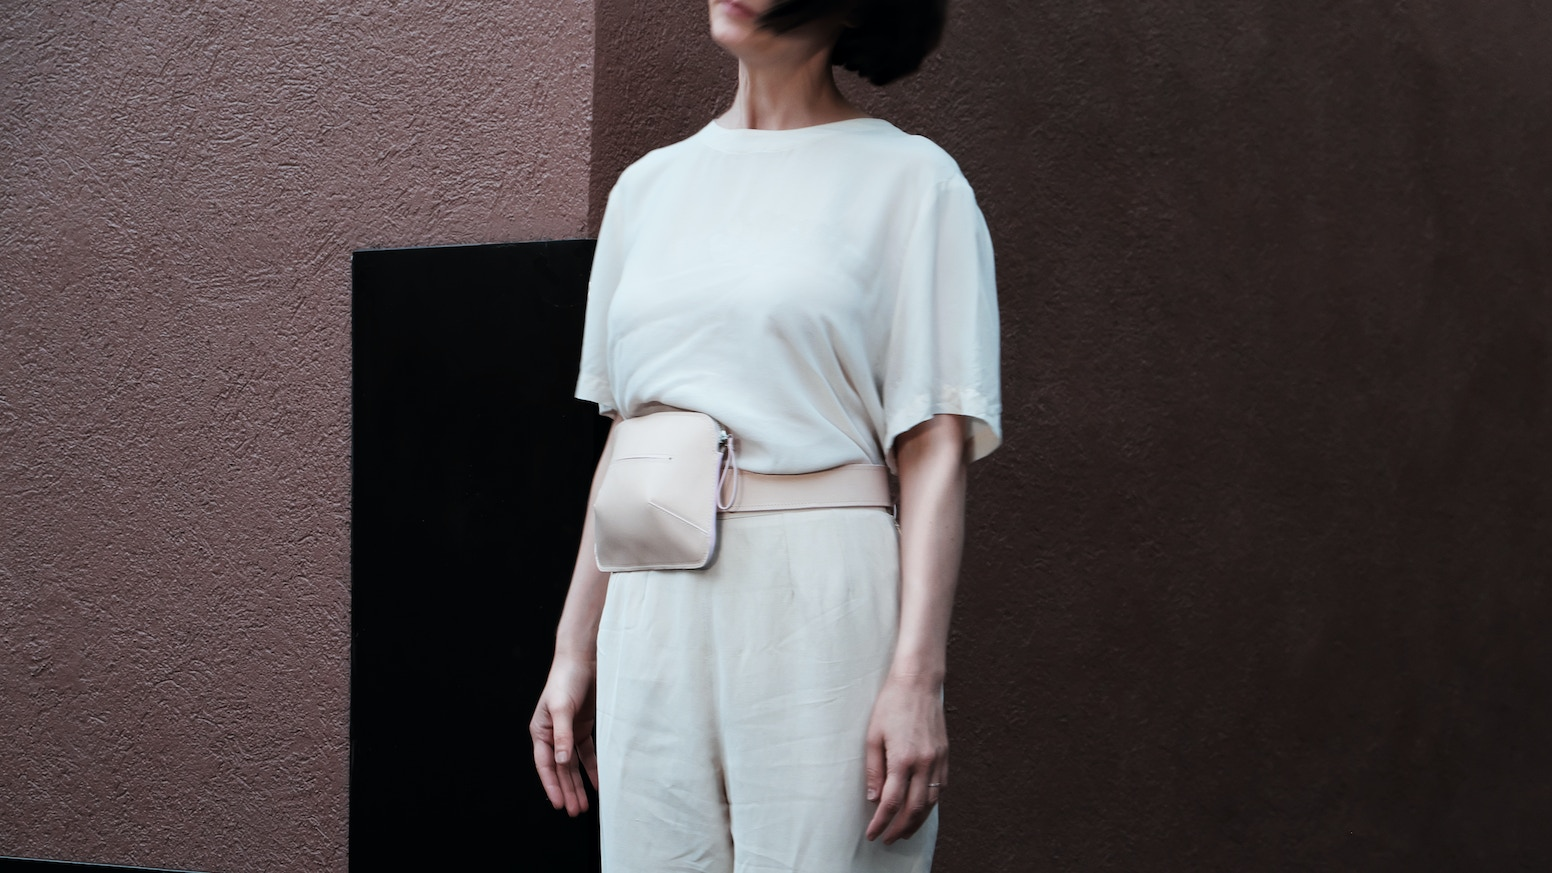 Miljours Studio offers high quality leather goods. We use eco leather that lasts a life time.